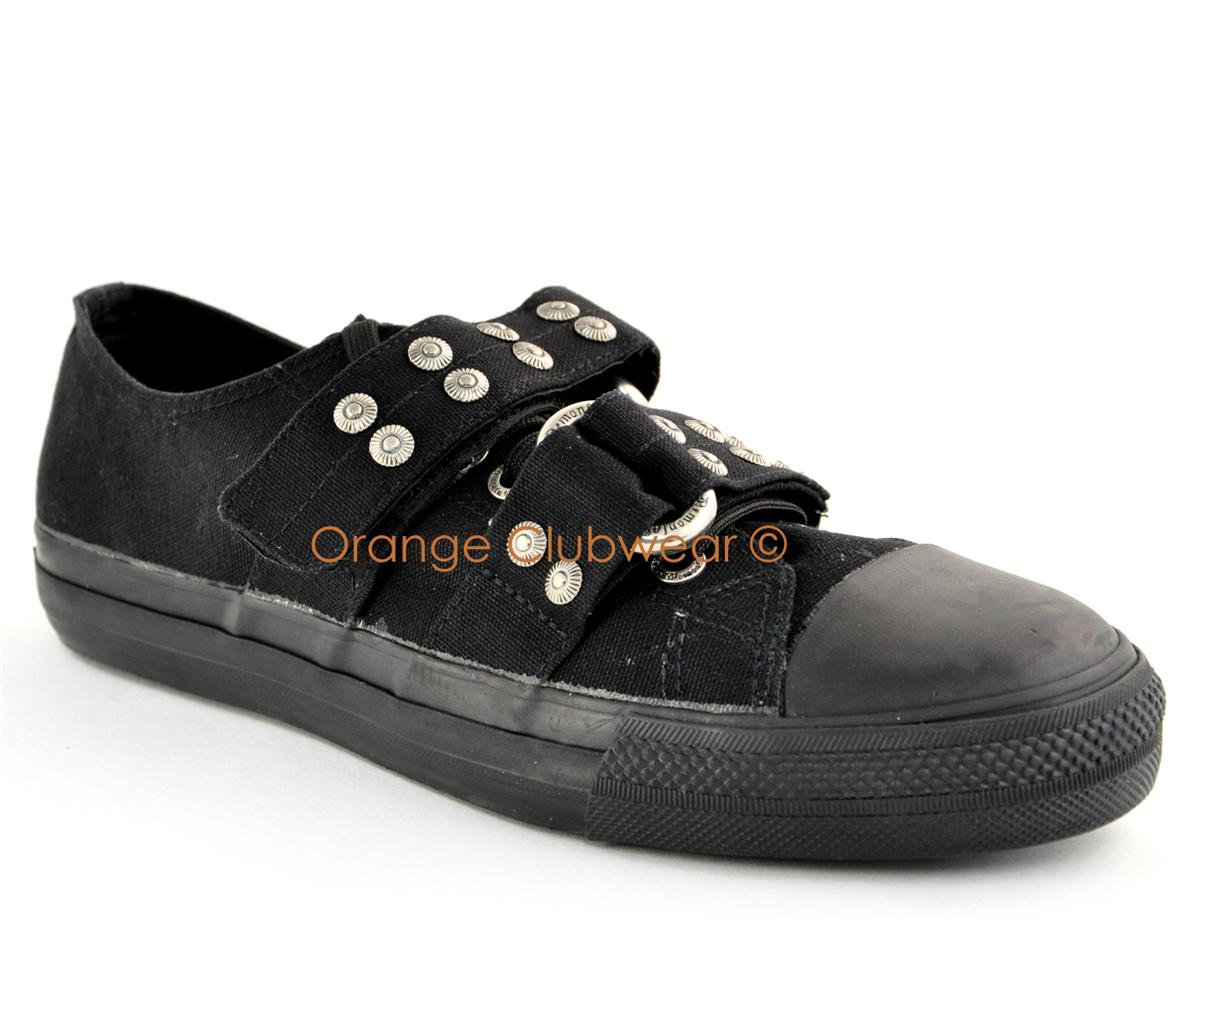 Online shopping for popular & hot Mens Studded Shoes from Shoes, Men's Casual Shoes, Loafers, Oxfords and more related Mens Studded Shoes like shoes men studded, studded men shoes, men studded shoes, men's studded shoes. Discover over of the best Selection Mens Studded Shoes on archivesnapug.cf Besides, various selected Mens Studded Shoes brands are .